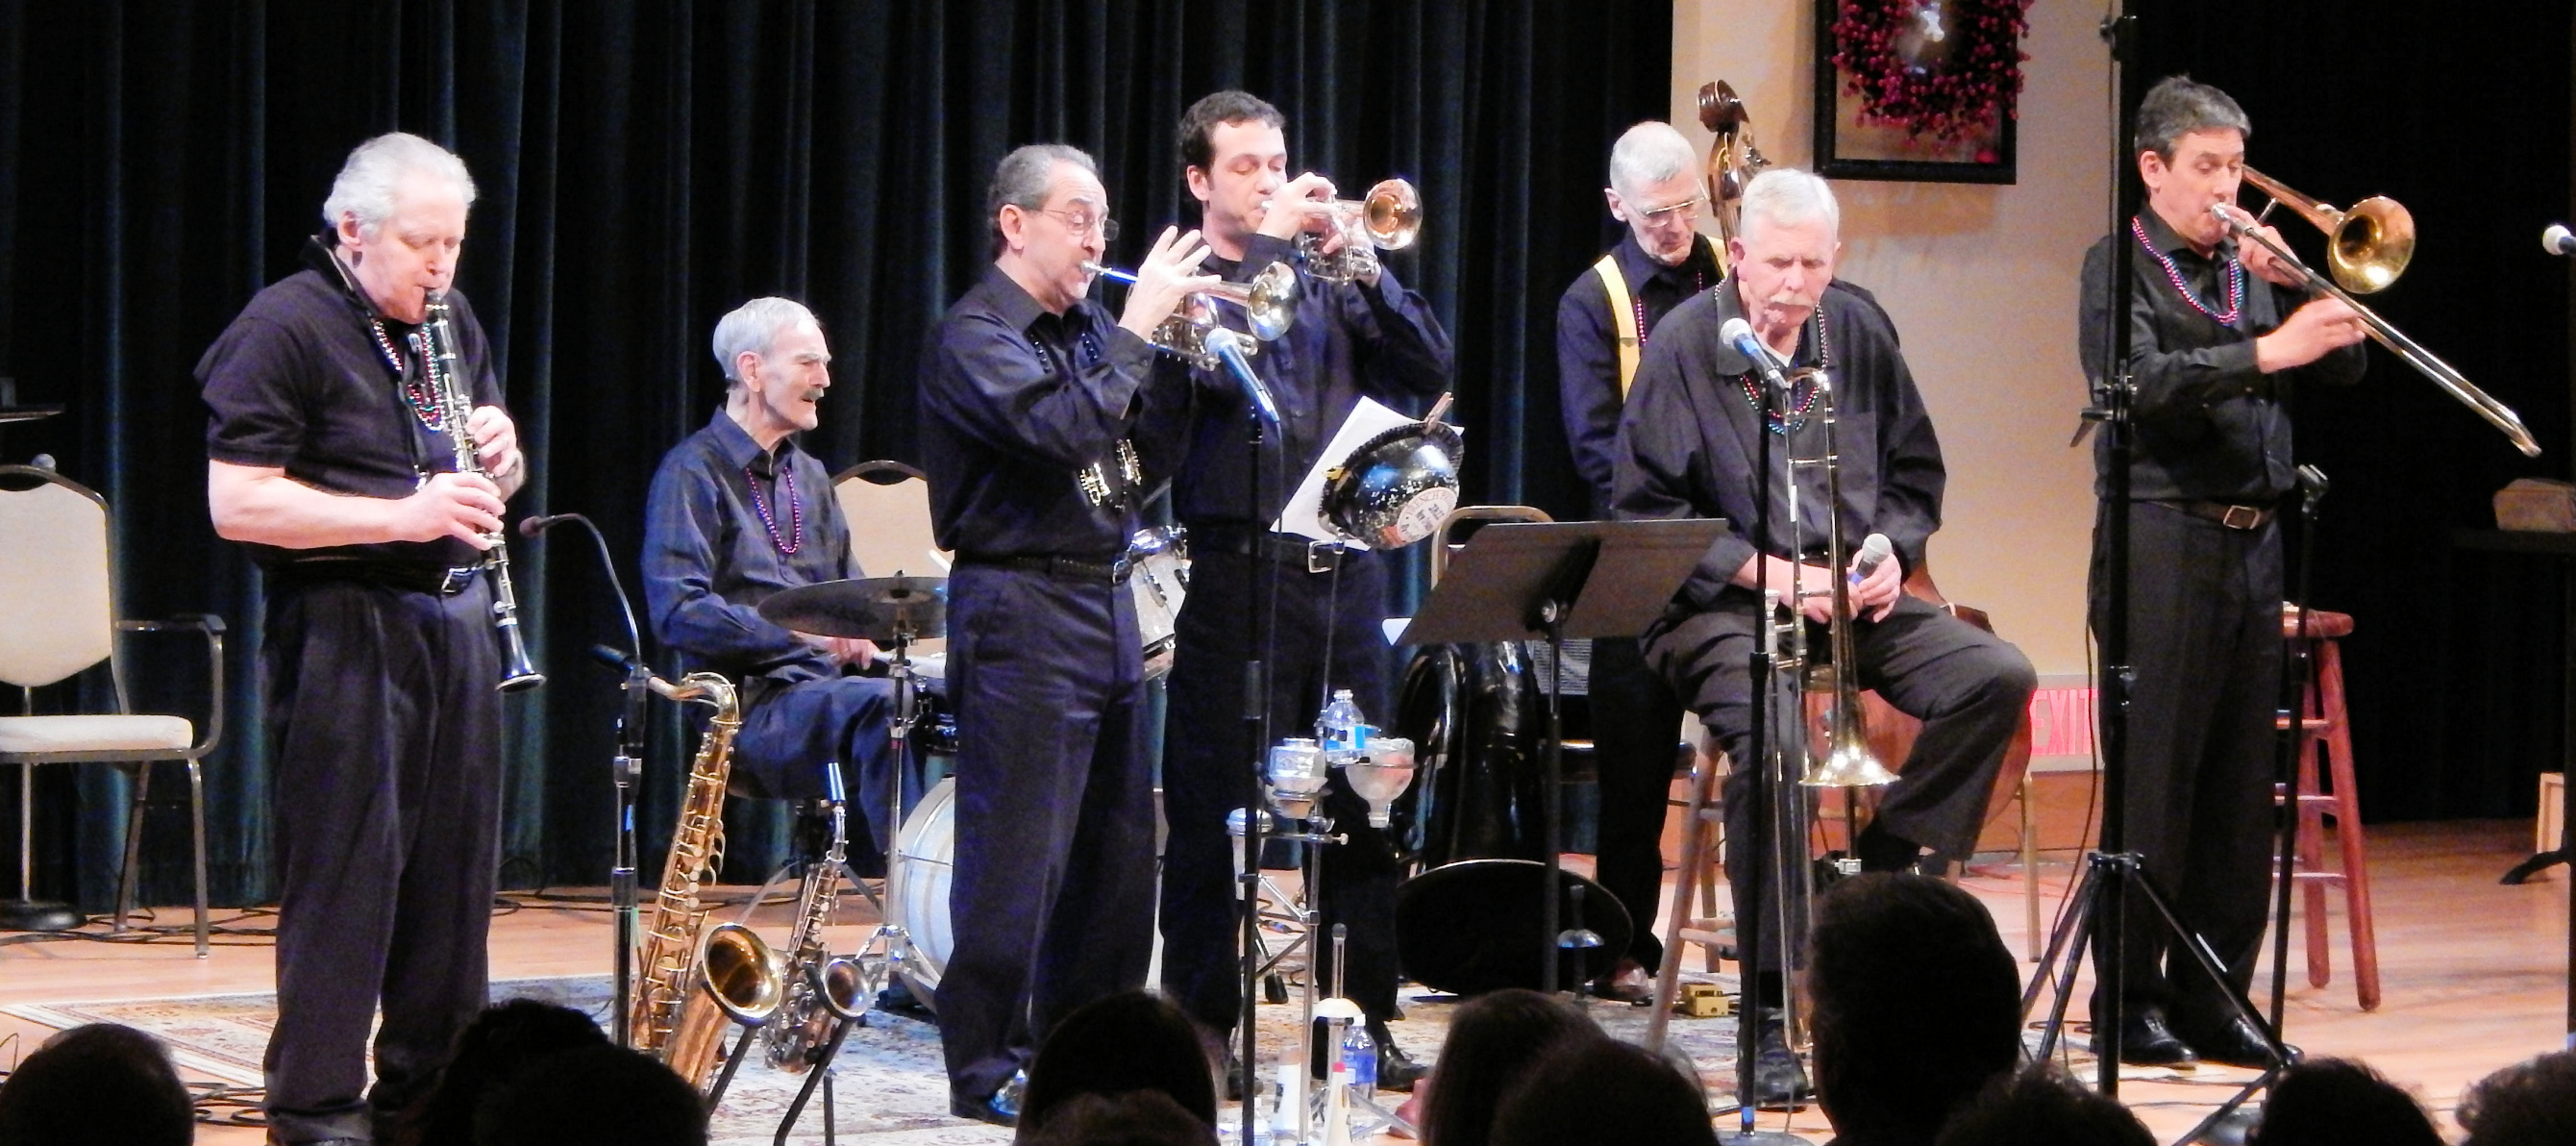 Band with trombone and extra cornet